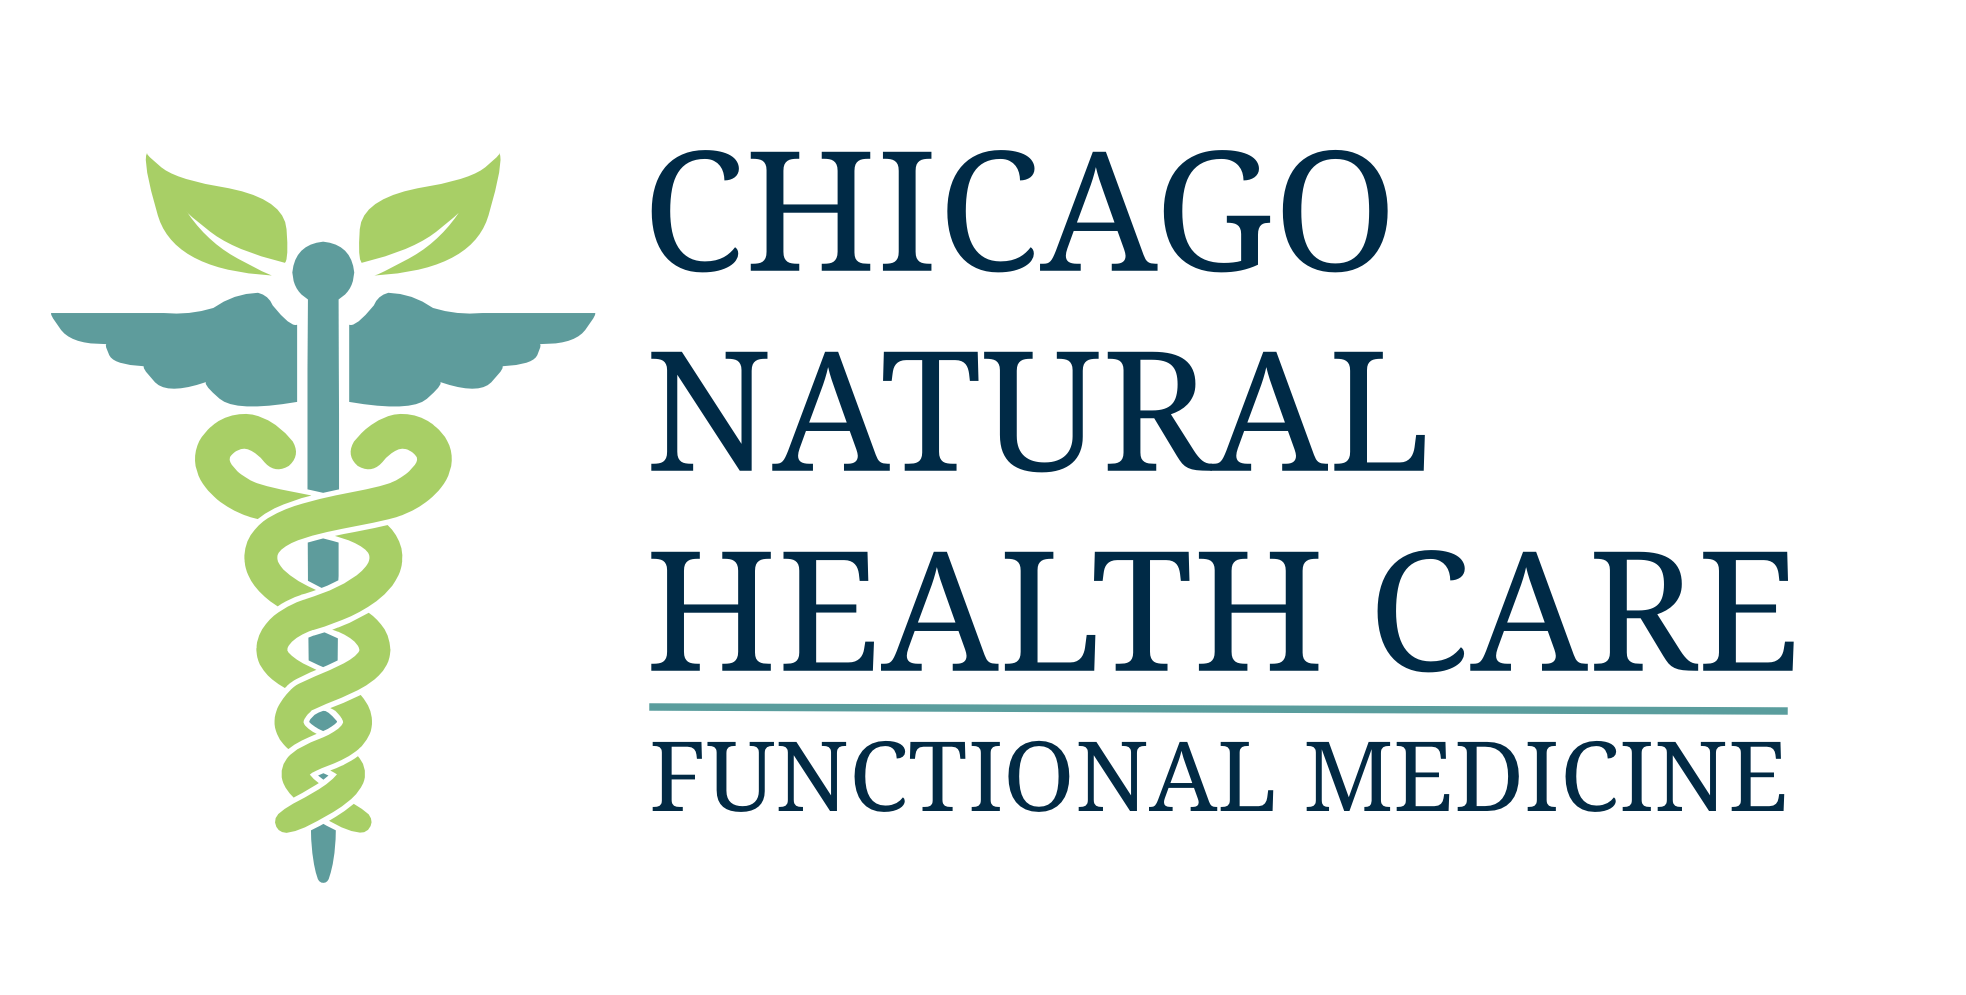 Chicago Natural Health Care